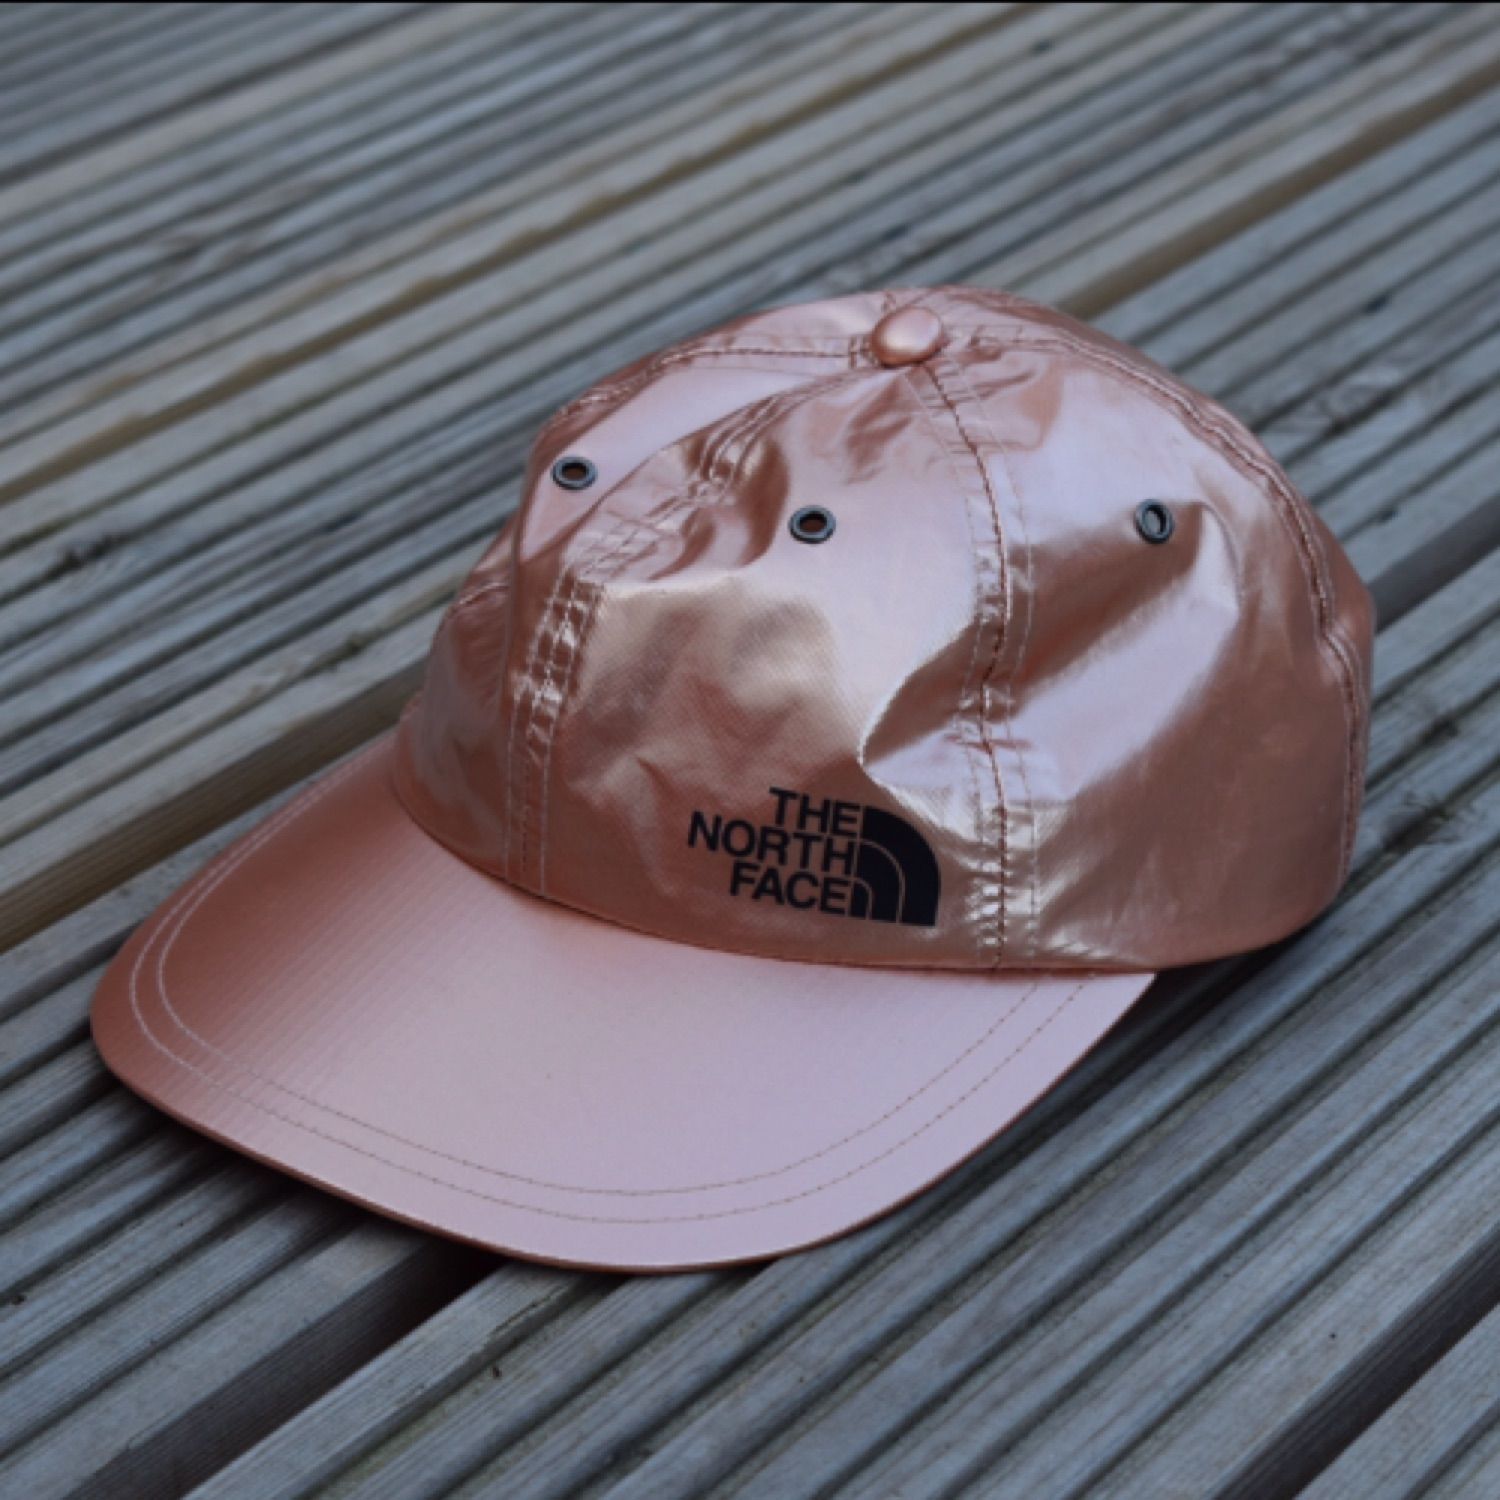 82eabe031 Supreme X The North Face 6-Panel - Retail Sold Out